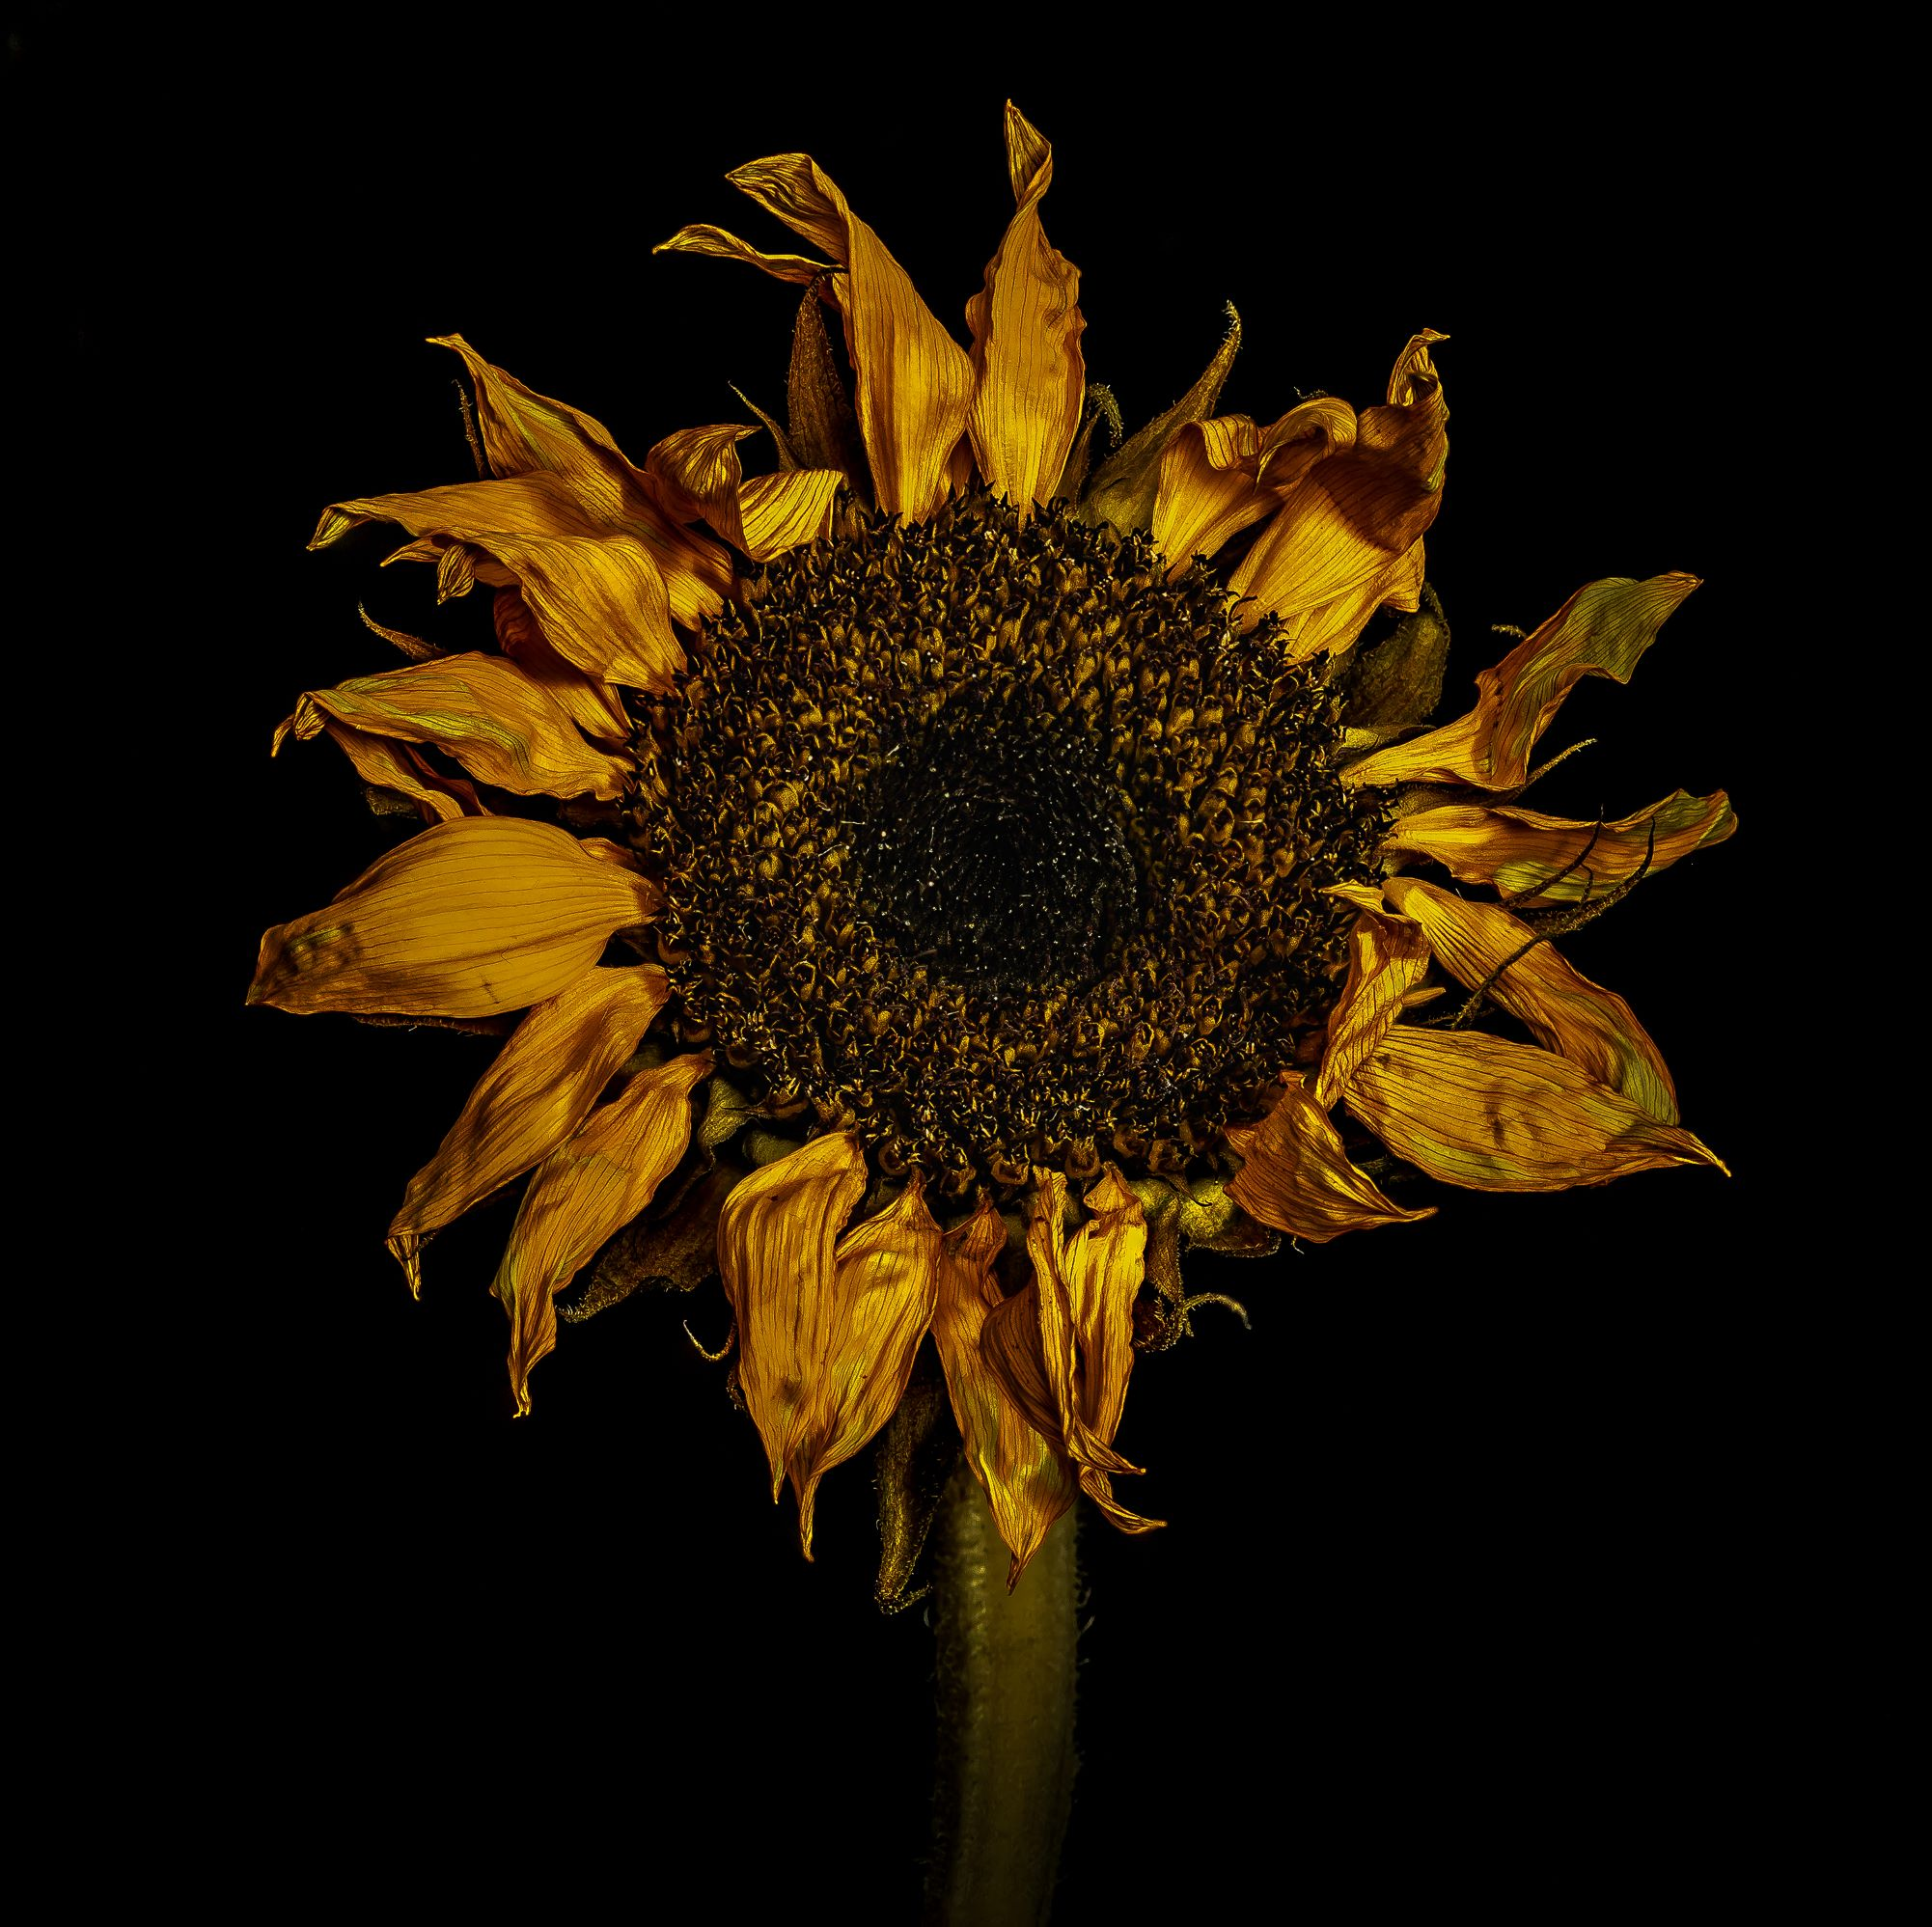 Crunchy Sunflower